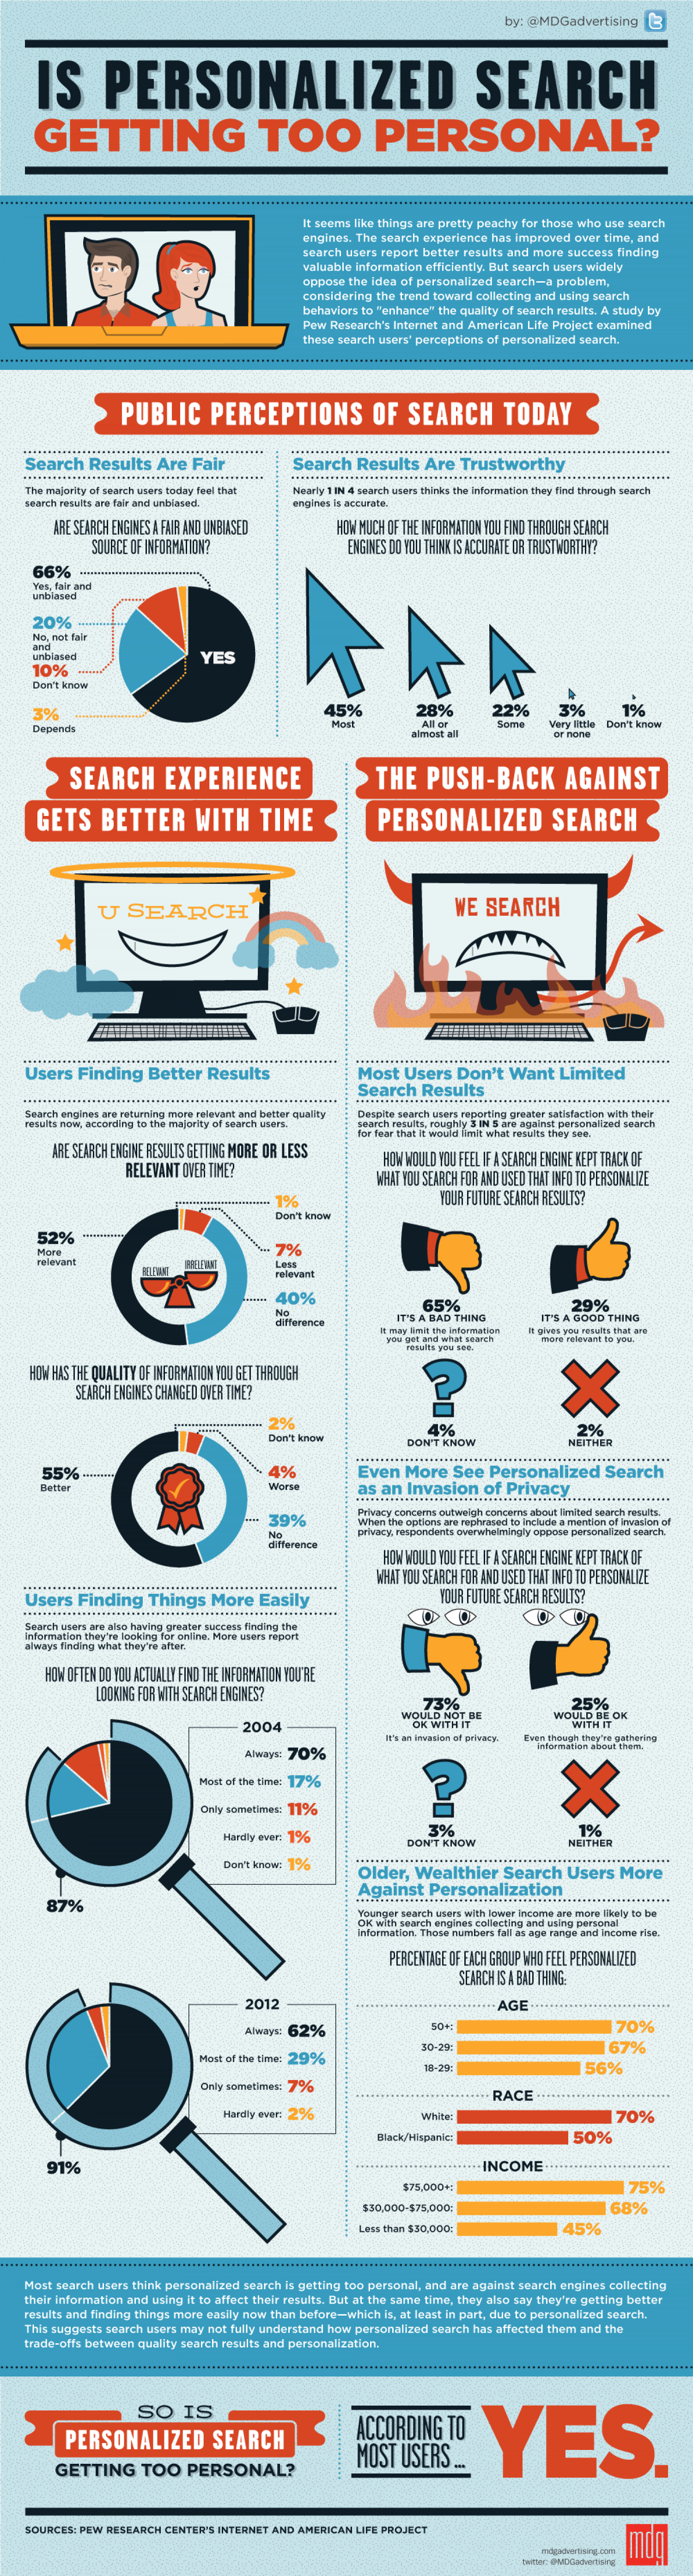 Is Personalized Search Getting Too Personal? [Infographic] Infographic